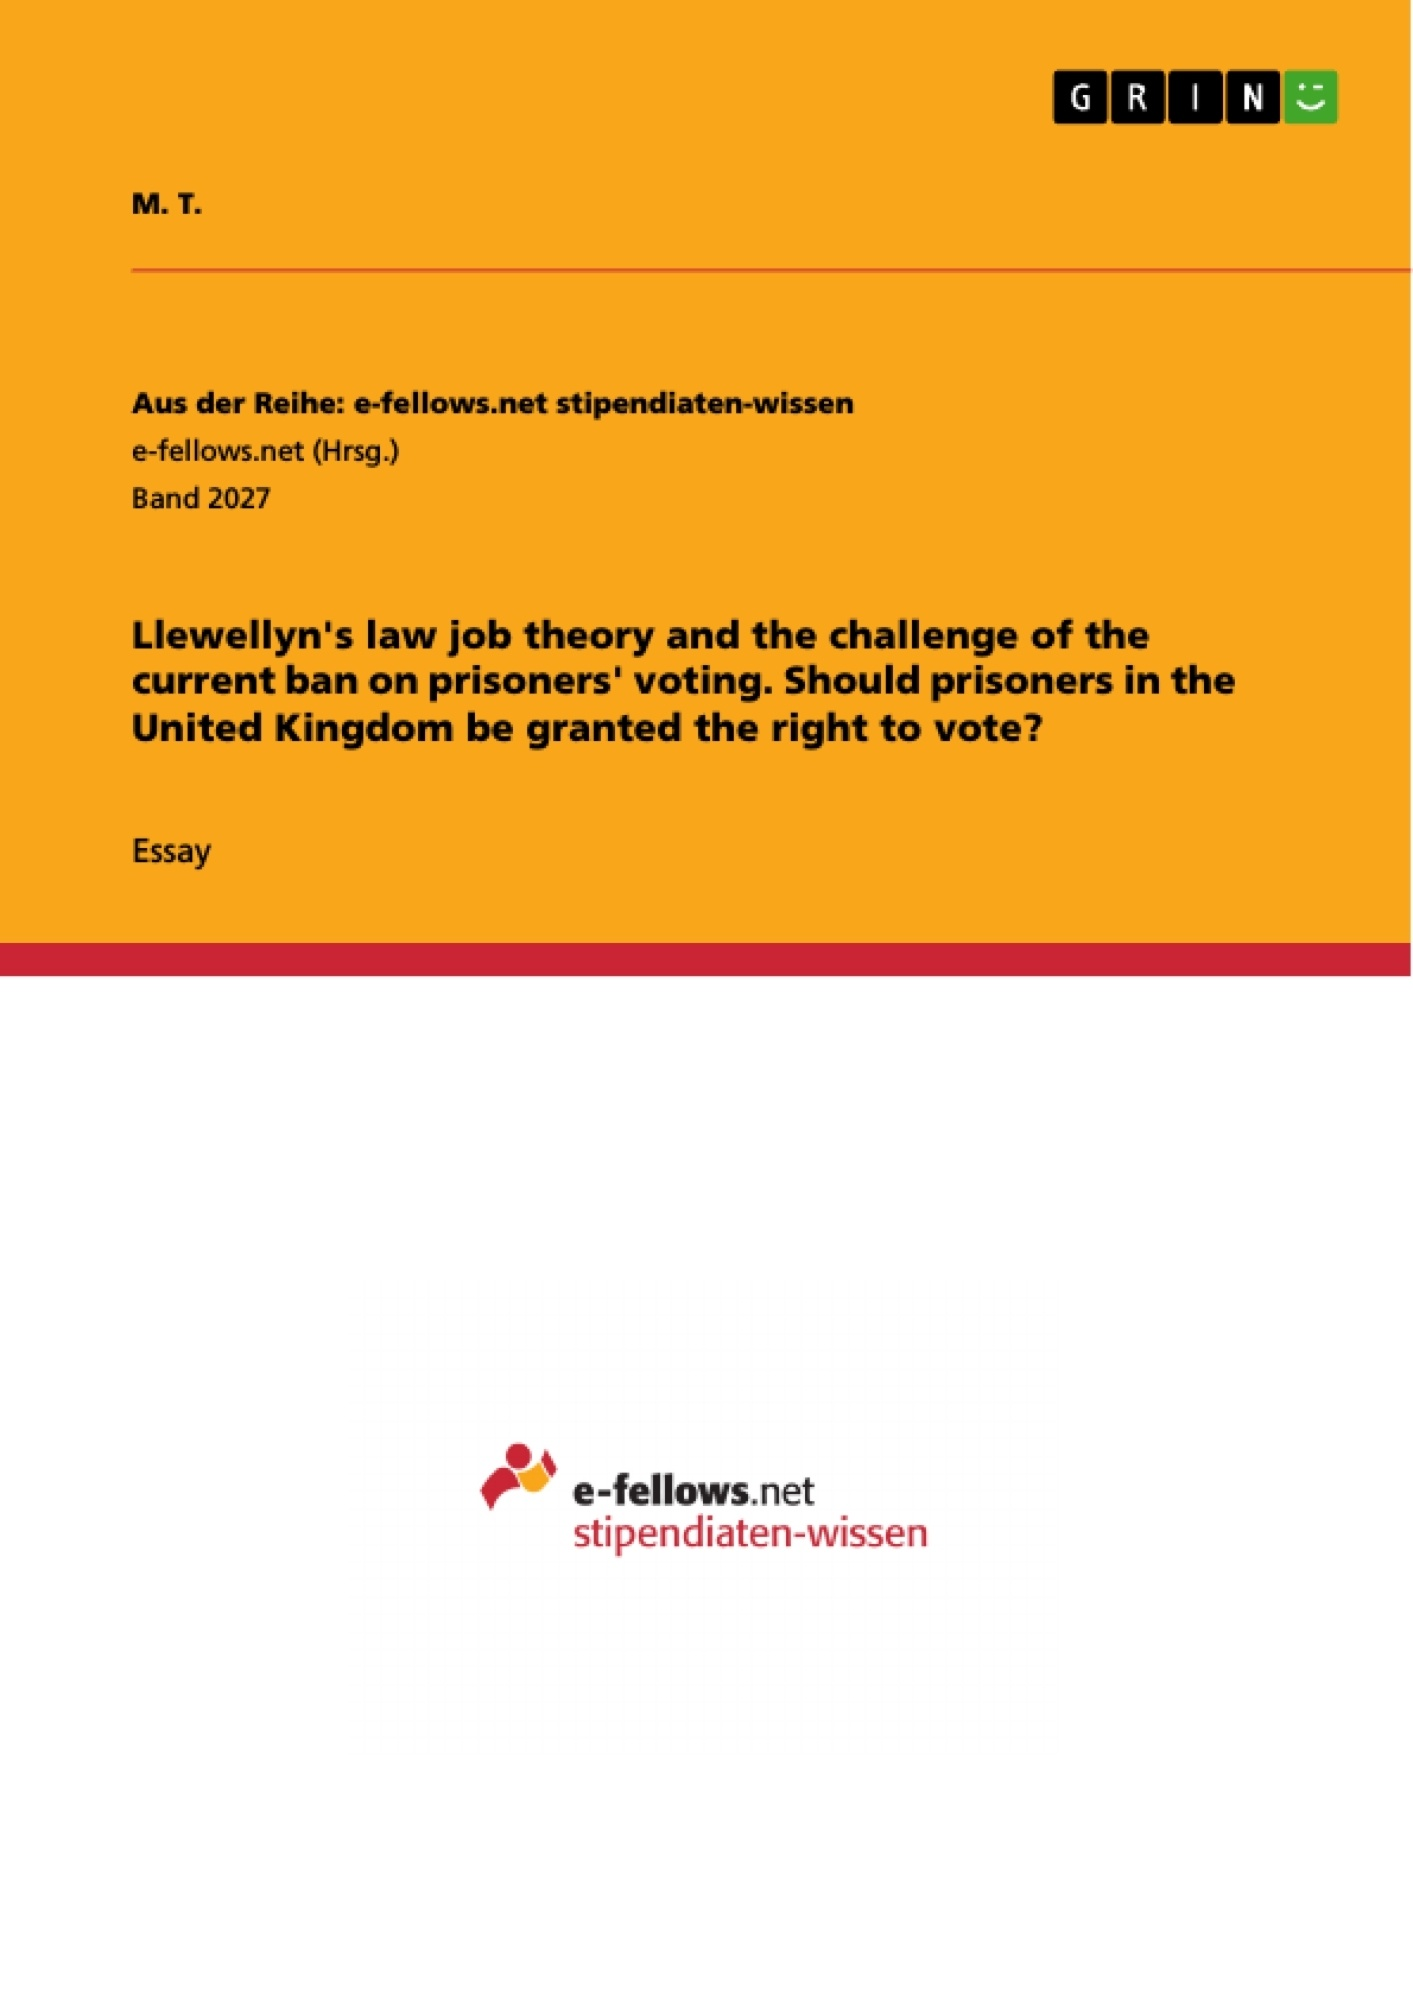 Title: Llewellyn's law job theory and the challenge of the current ban on prisoners' voting. Should prisoners in the United Kingdom be granted the right to vote?